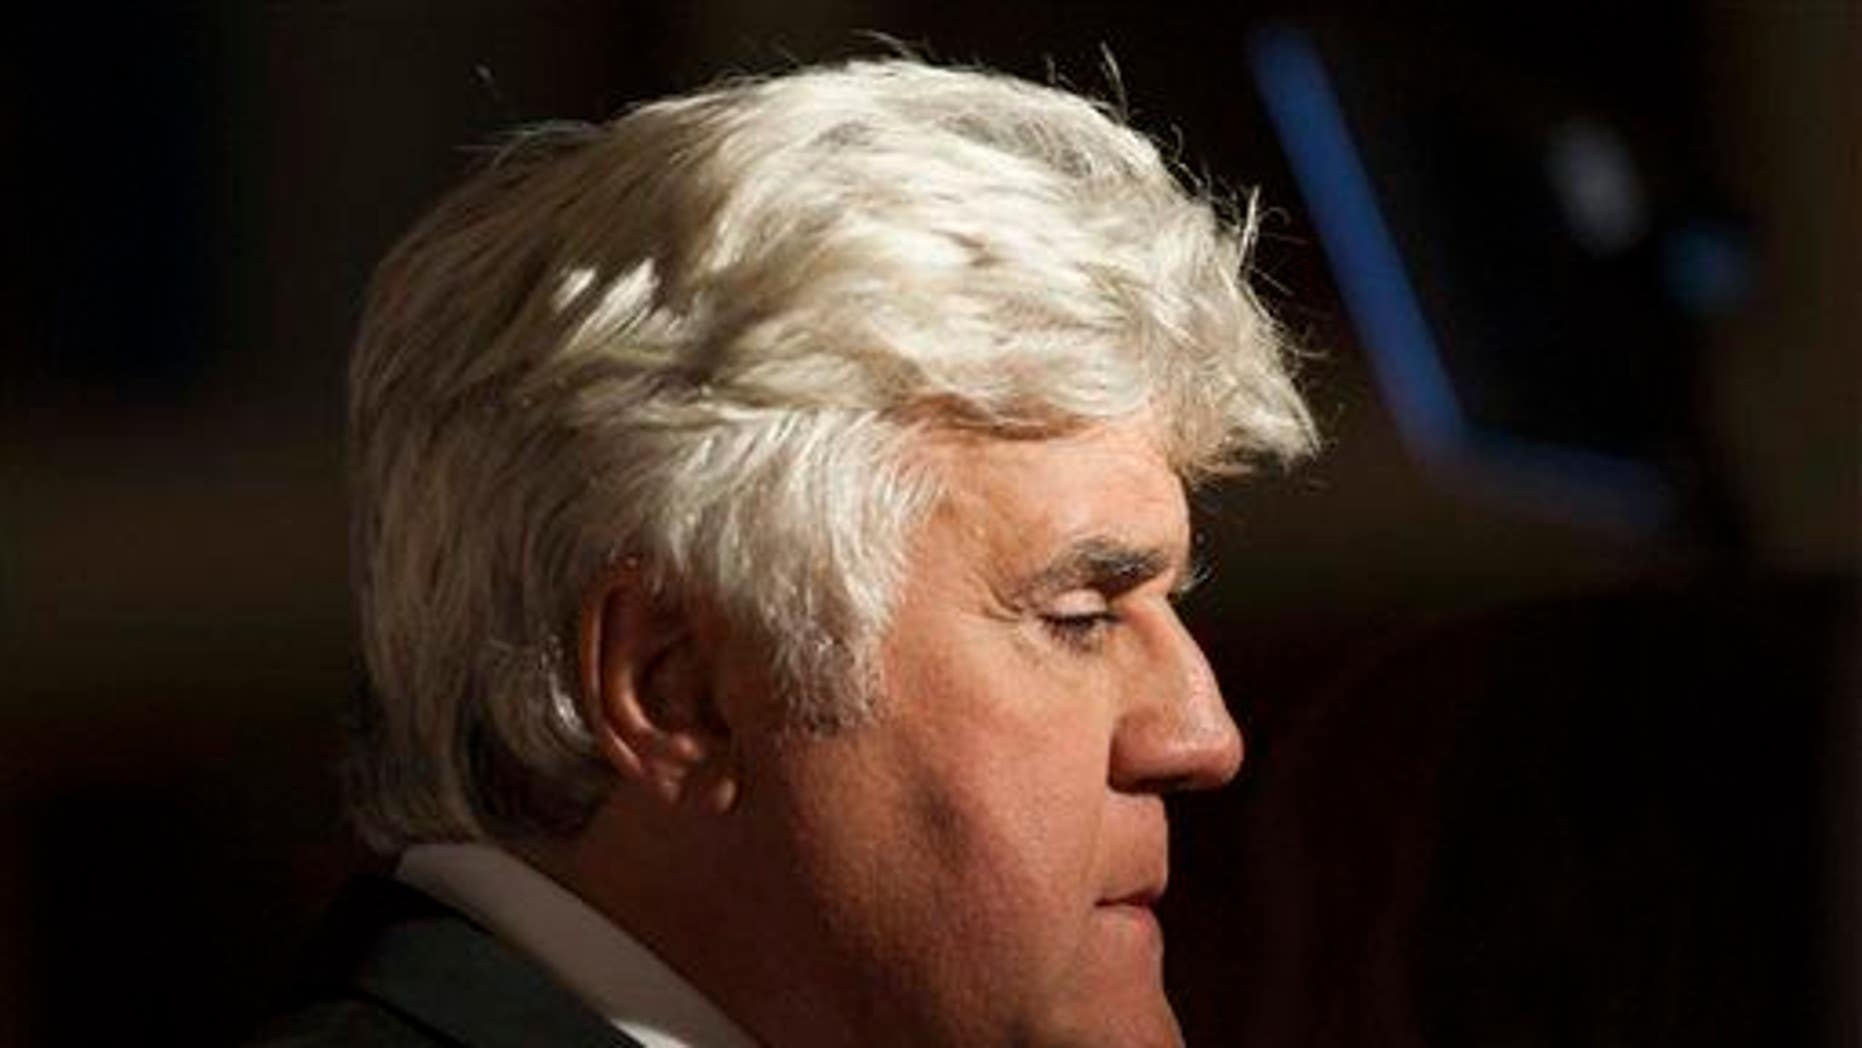 Jay Leno is interview on the red carpet as he arrives at the Kennedy Center for the Performing Arts for the Mark Twain Prize for American Humor on Sunday, Oct. 19, 2014.